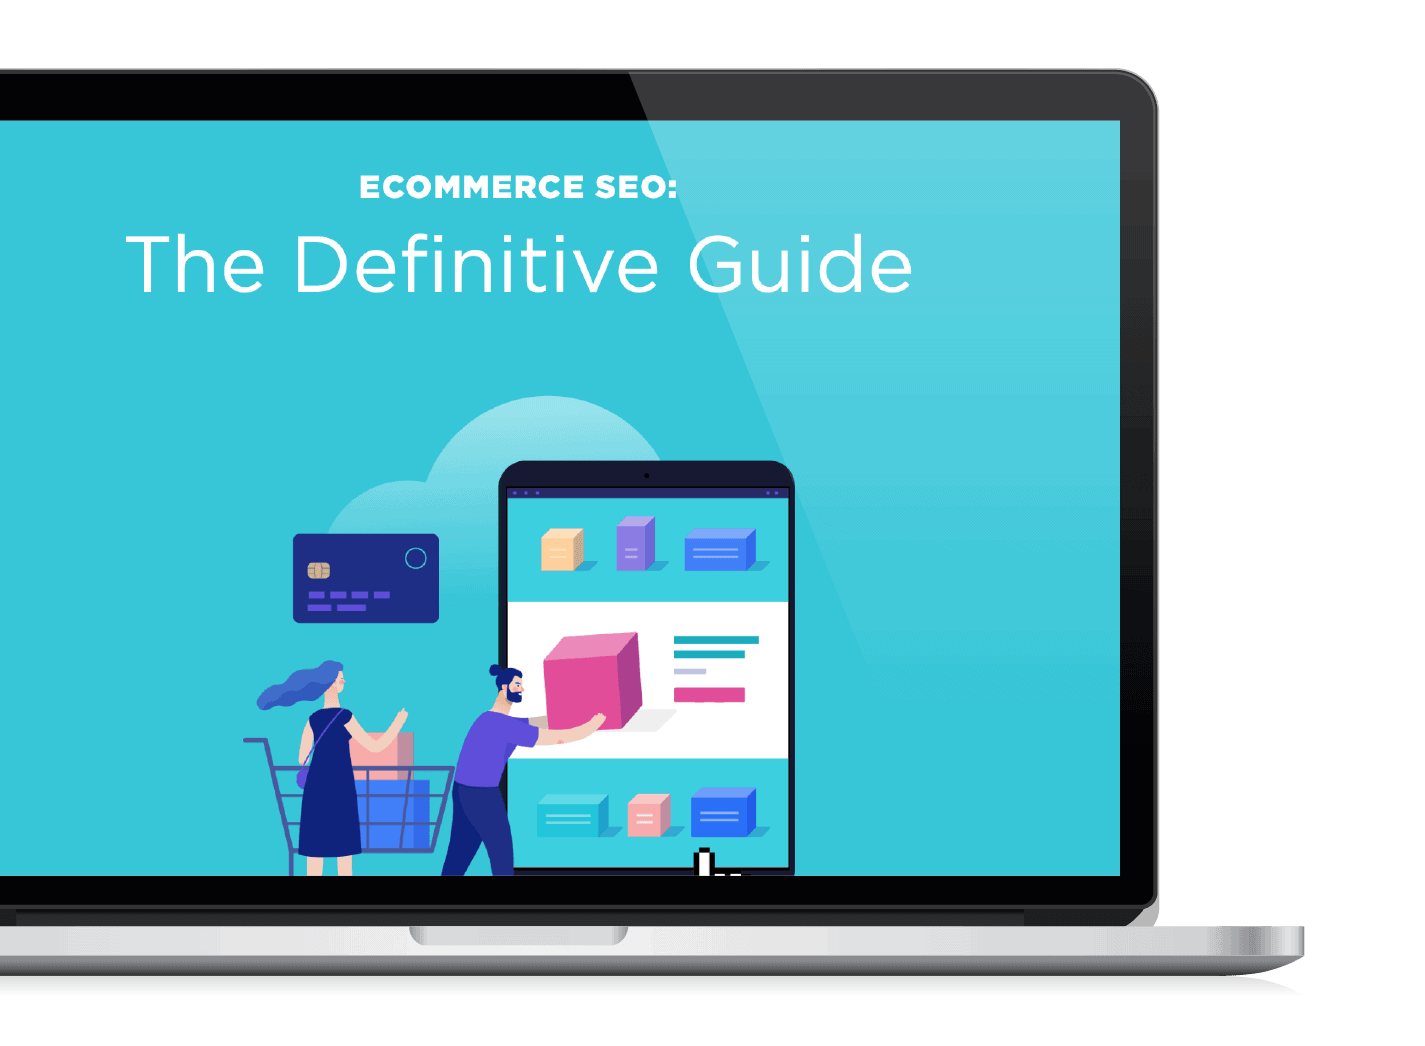 Ecommerce SEO: The Definitive Guide